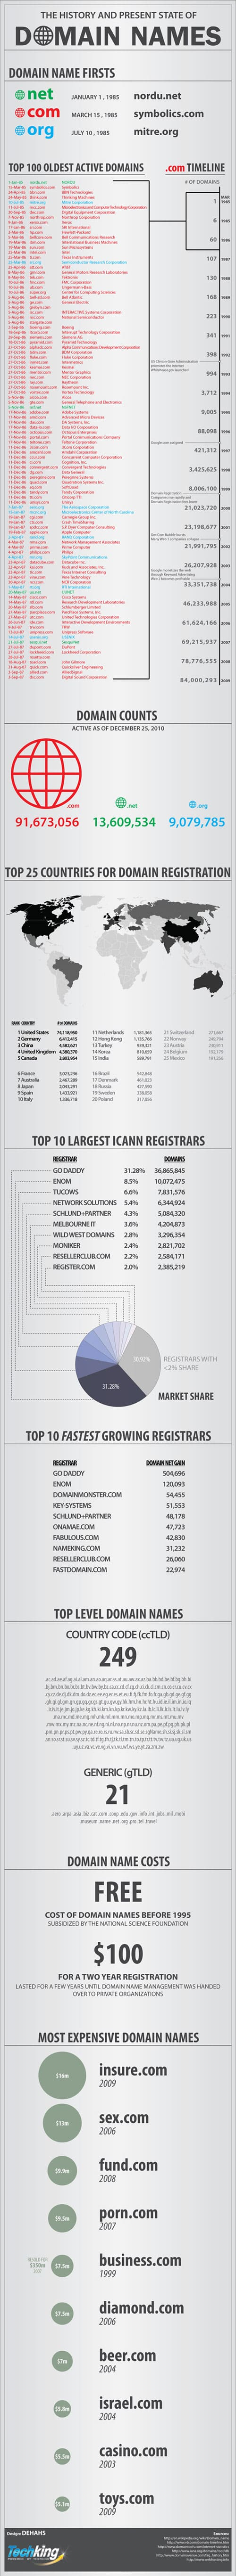 domain names infographic